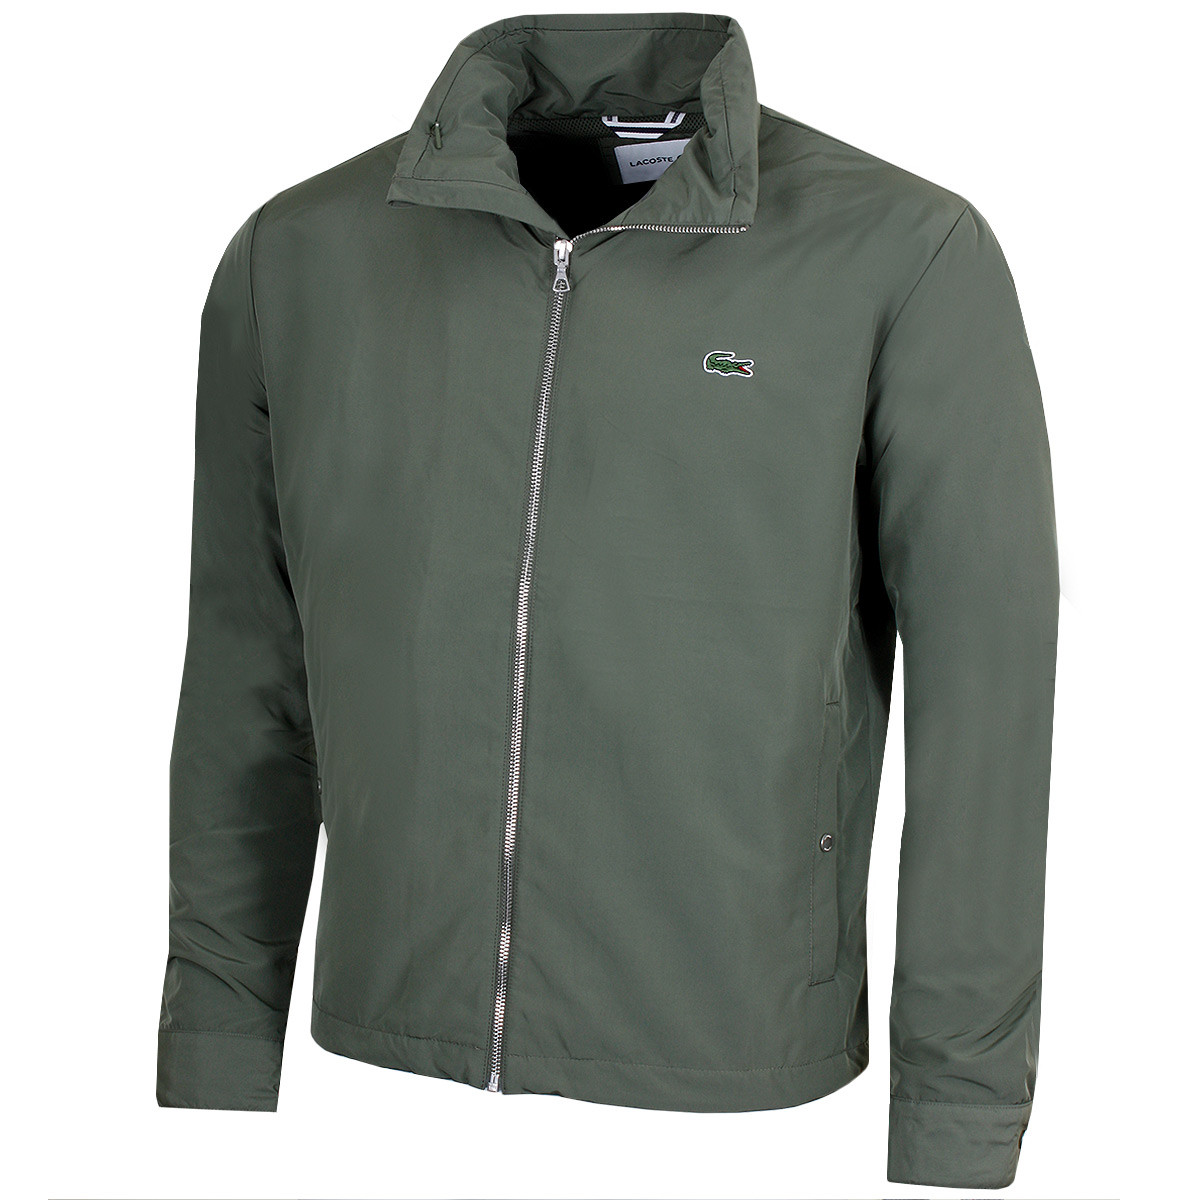 bbb1e506a9 Lacoste Mens BH6121 Embroidered Blouson Jacket